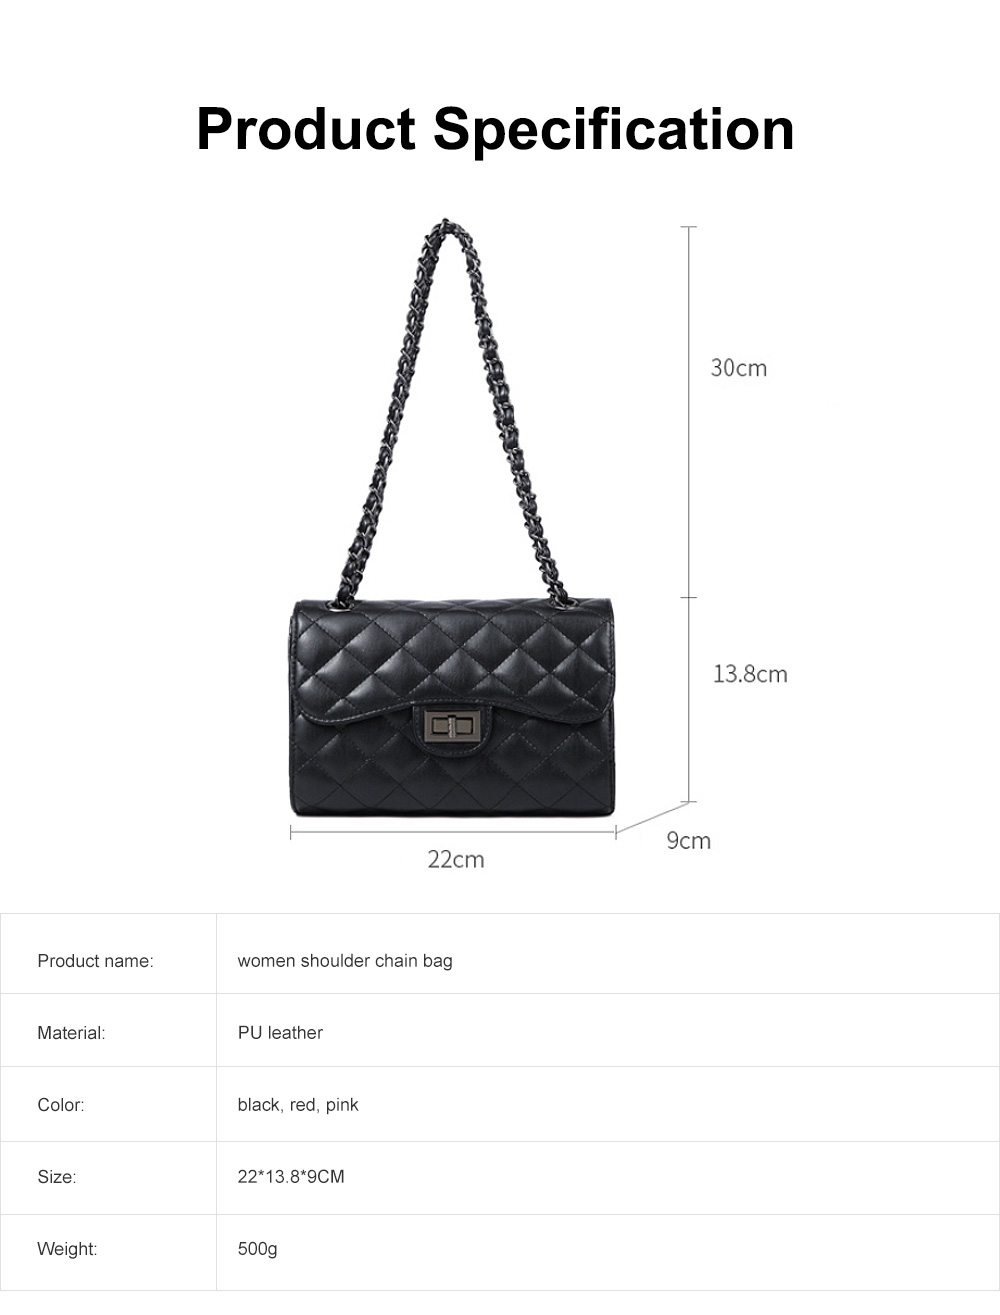 Fashionable Small Women Shoulder Bag with Rhombus Pattern Chain Casual Bag Messenger Bag 6